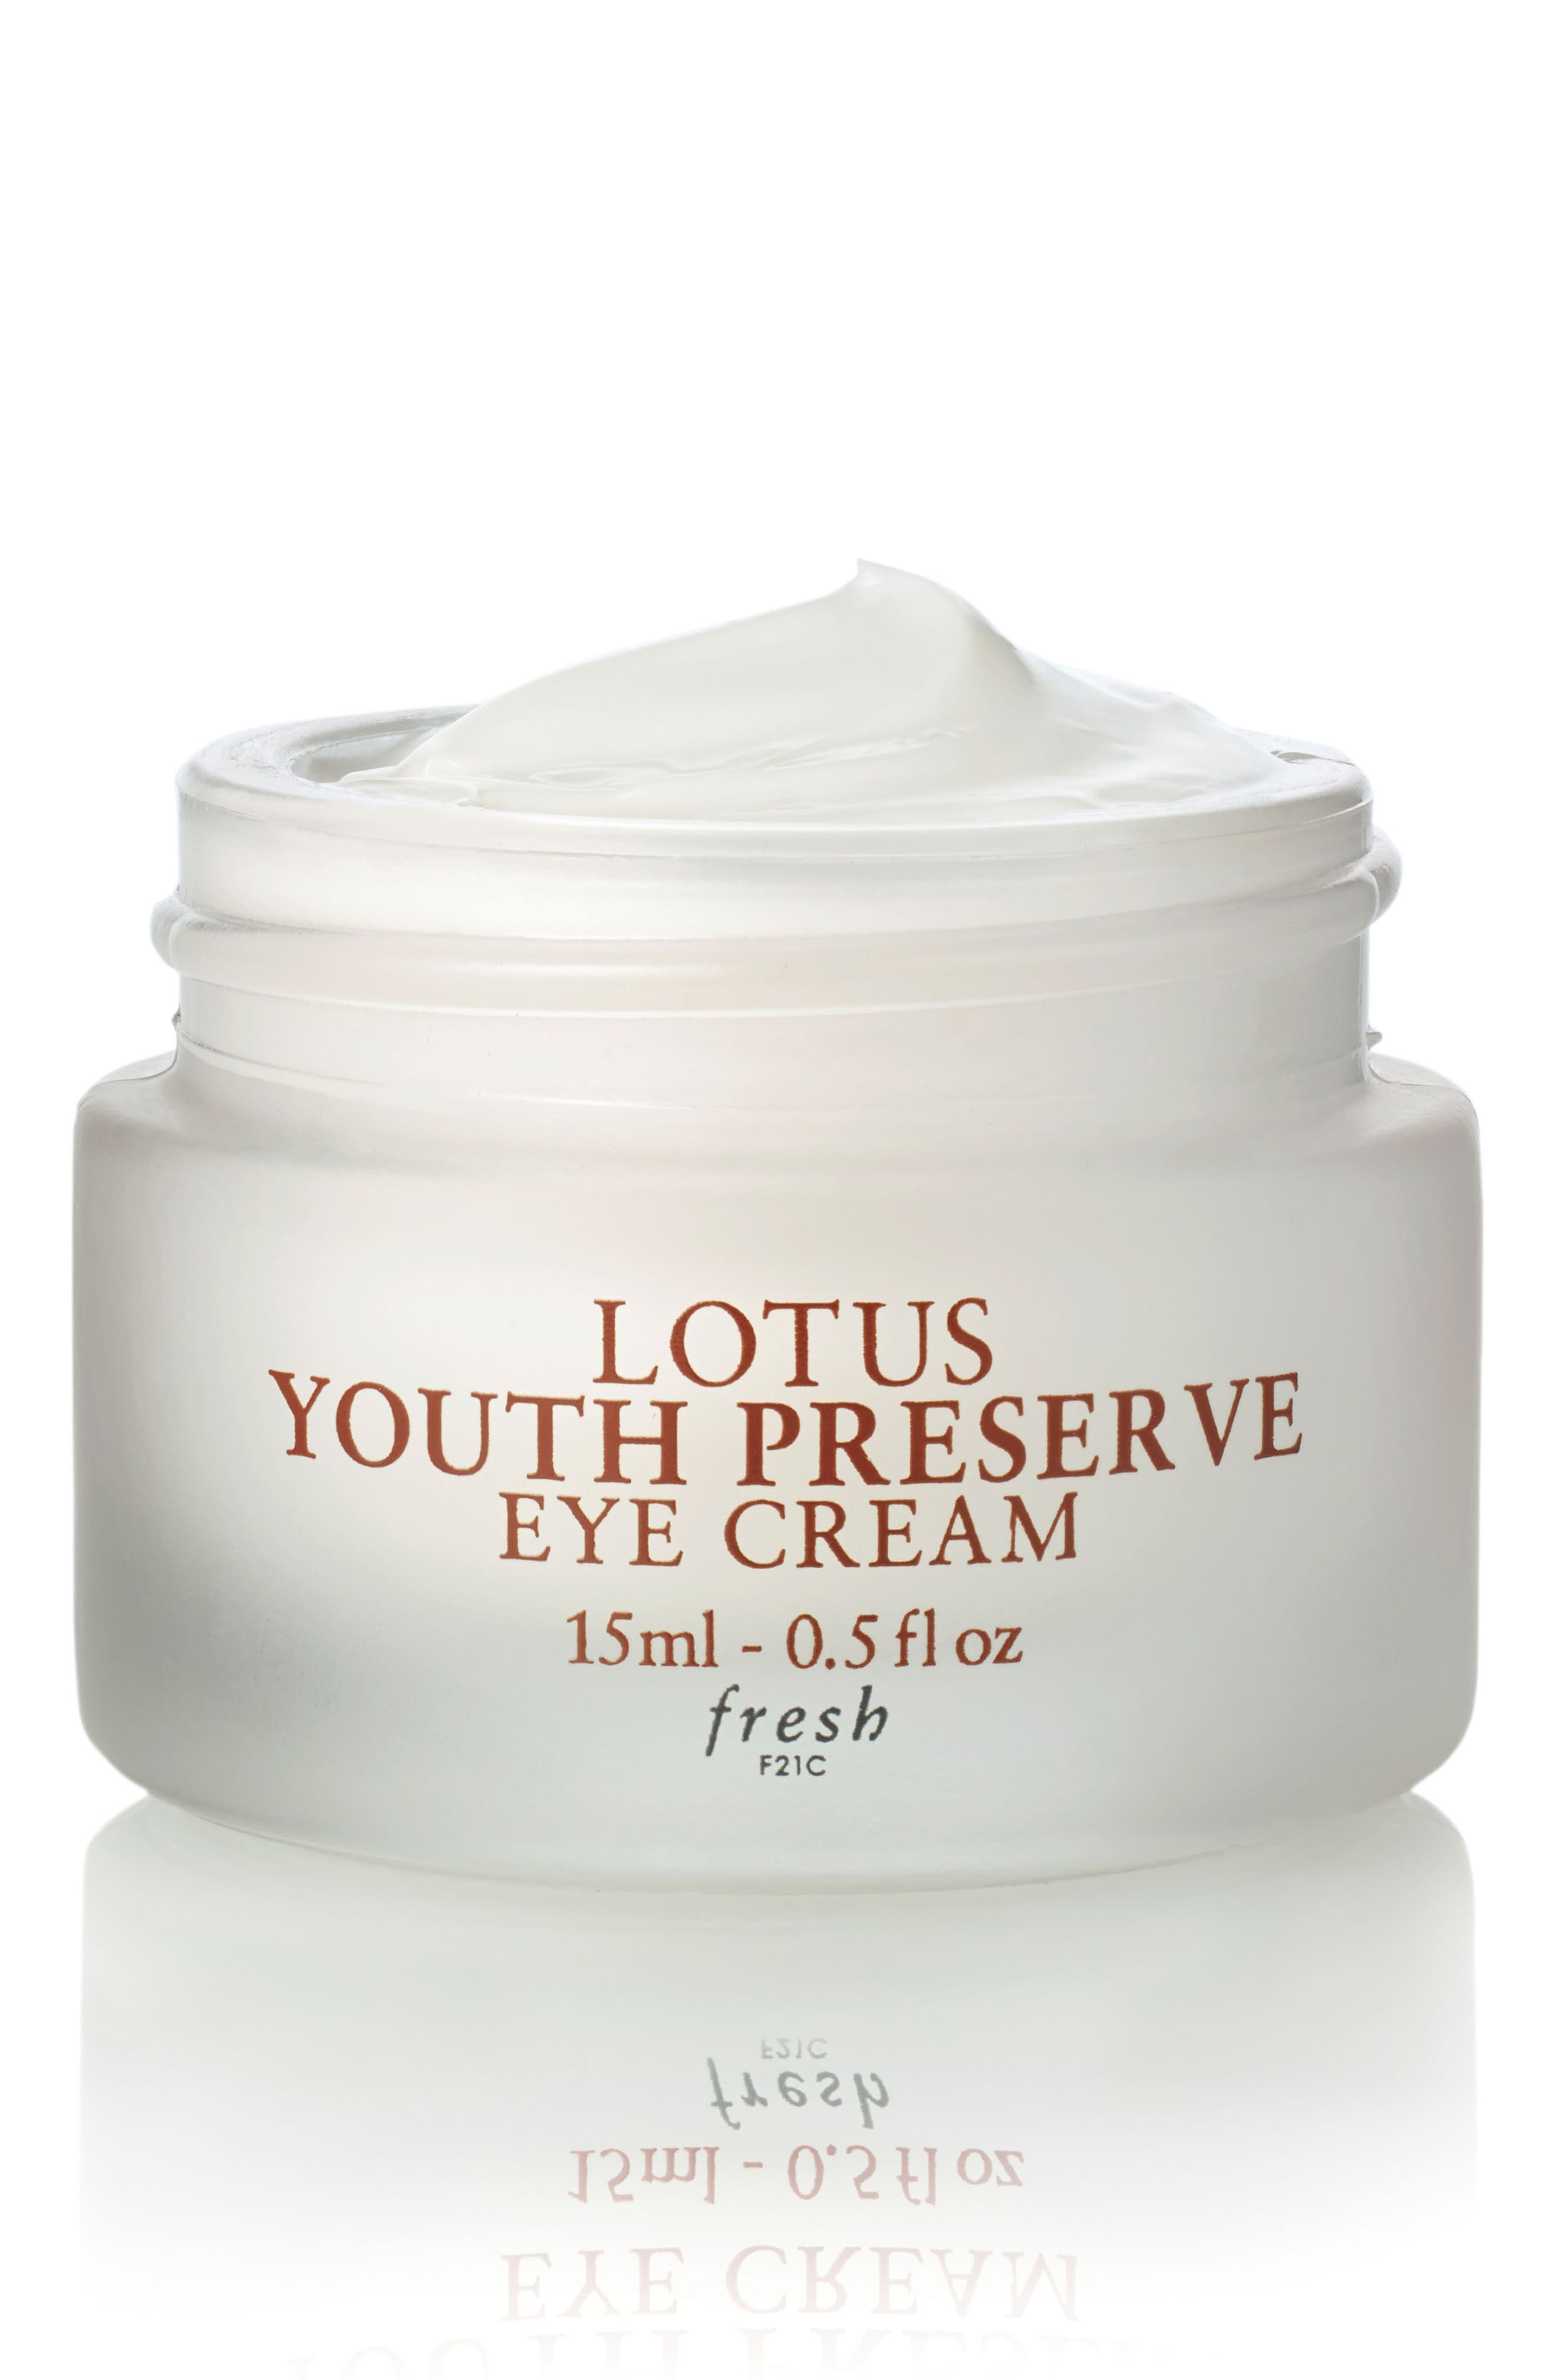 Lotus Youth Preserve Eye Cream,                             Main thumbnail 1, color,                             NO COLOR